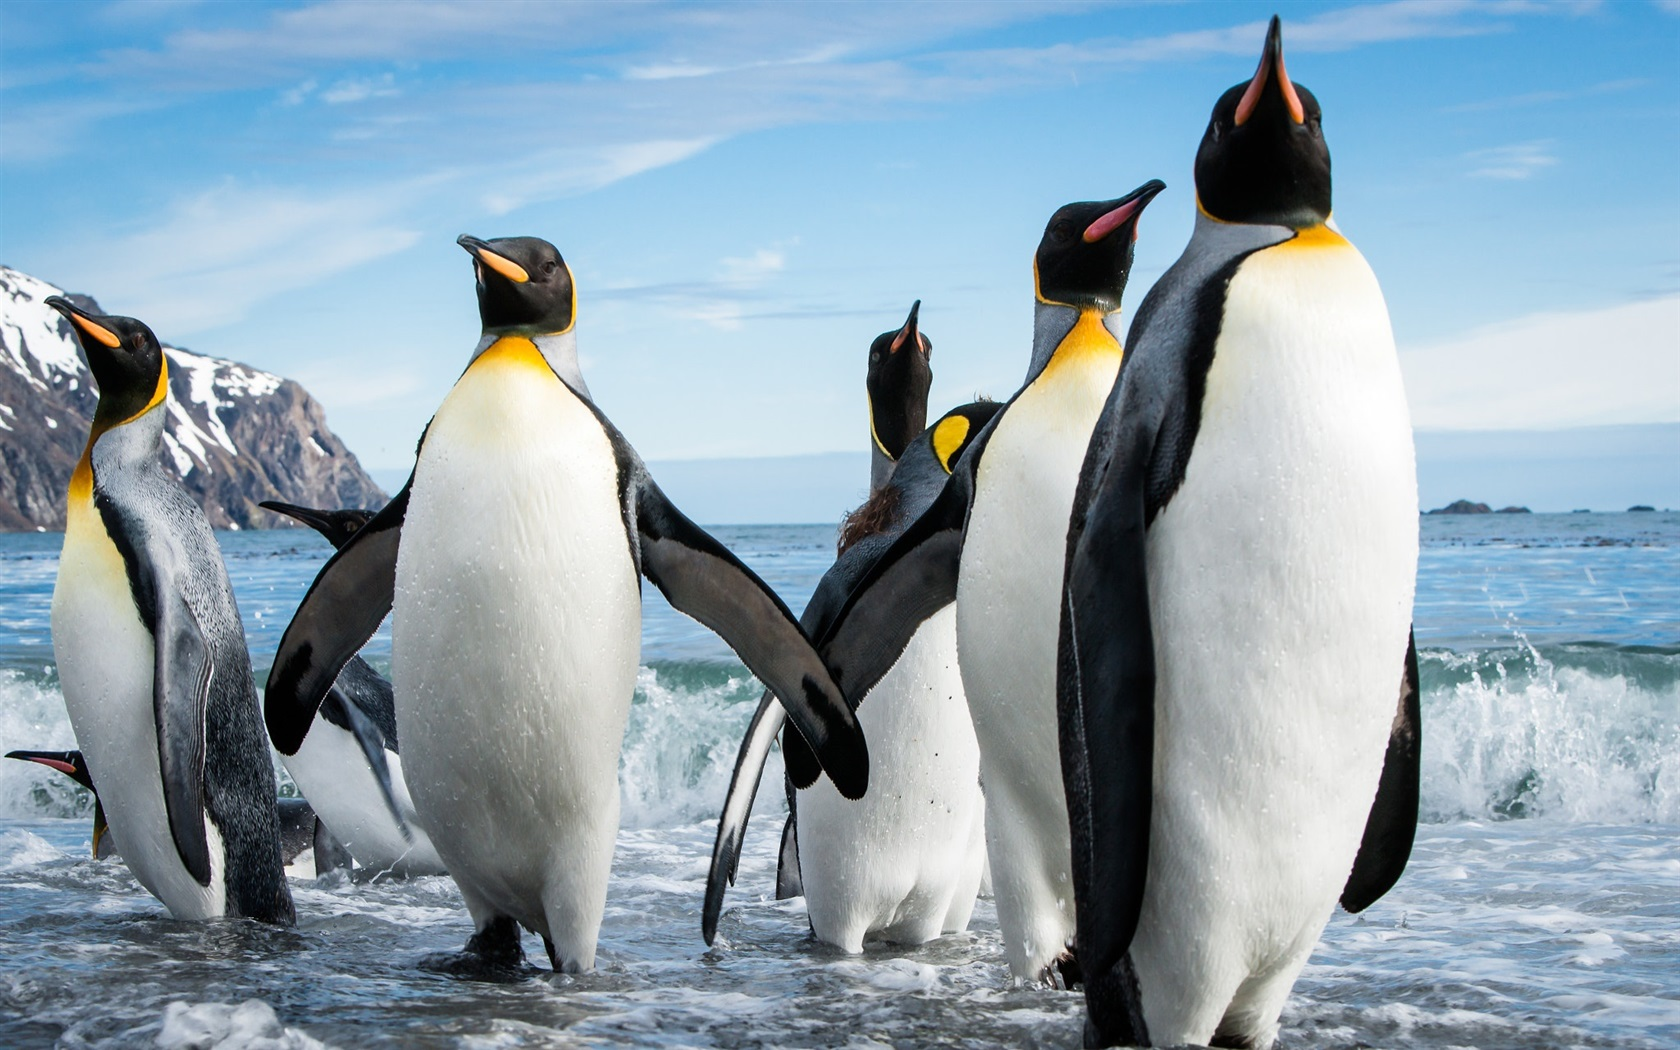 Wallpaper Some Penguins Sea Waves 1920x1200 Hd Picture